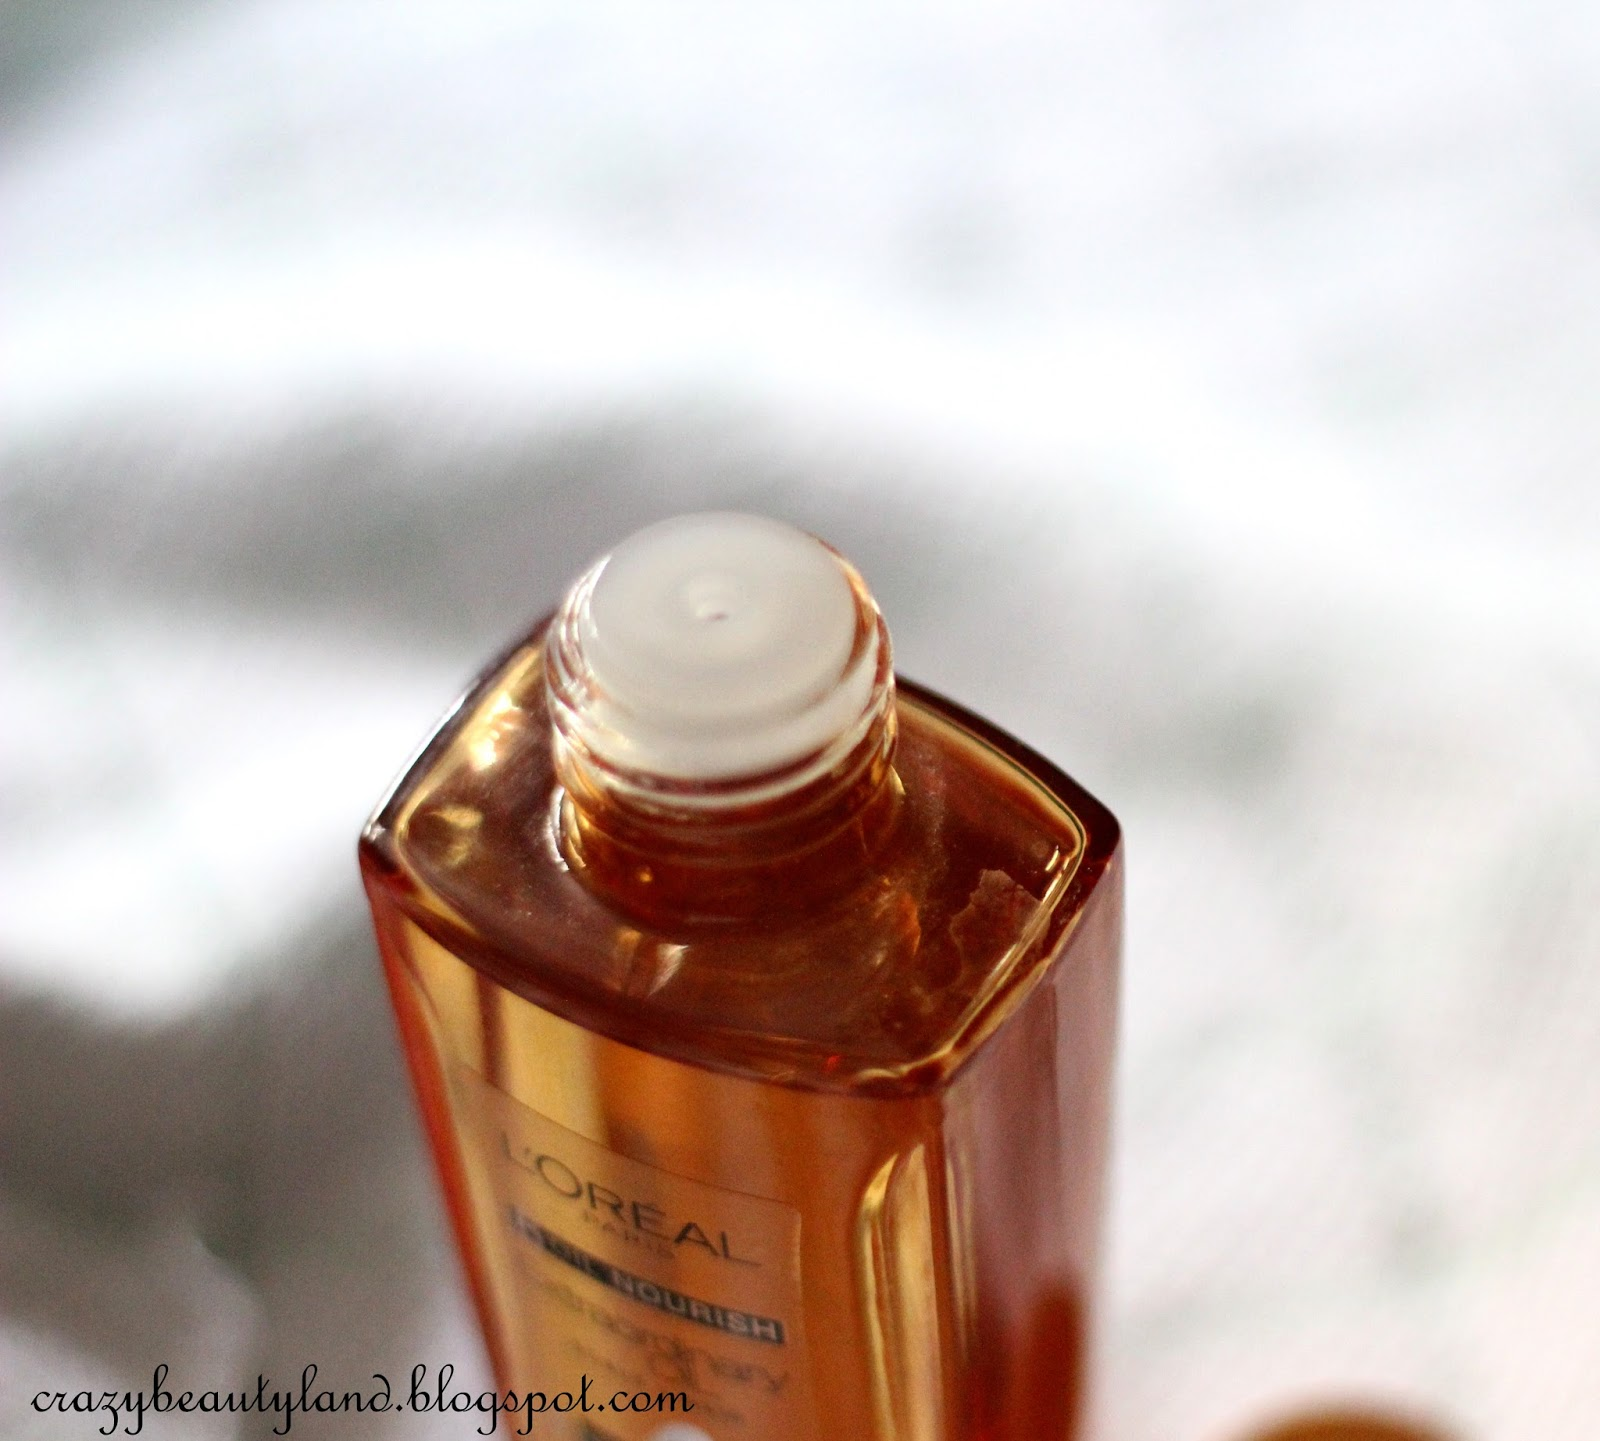 L'Oreal 6 Oil Nourish Extraordinary Oil Scalp+Hair in India - Review,photos,price, how to use it, dry hair oil, thin oil, dry oil, oil for dry hair, dry hair care, dry hair therapy, hair therapy